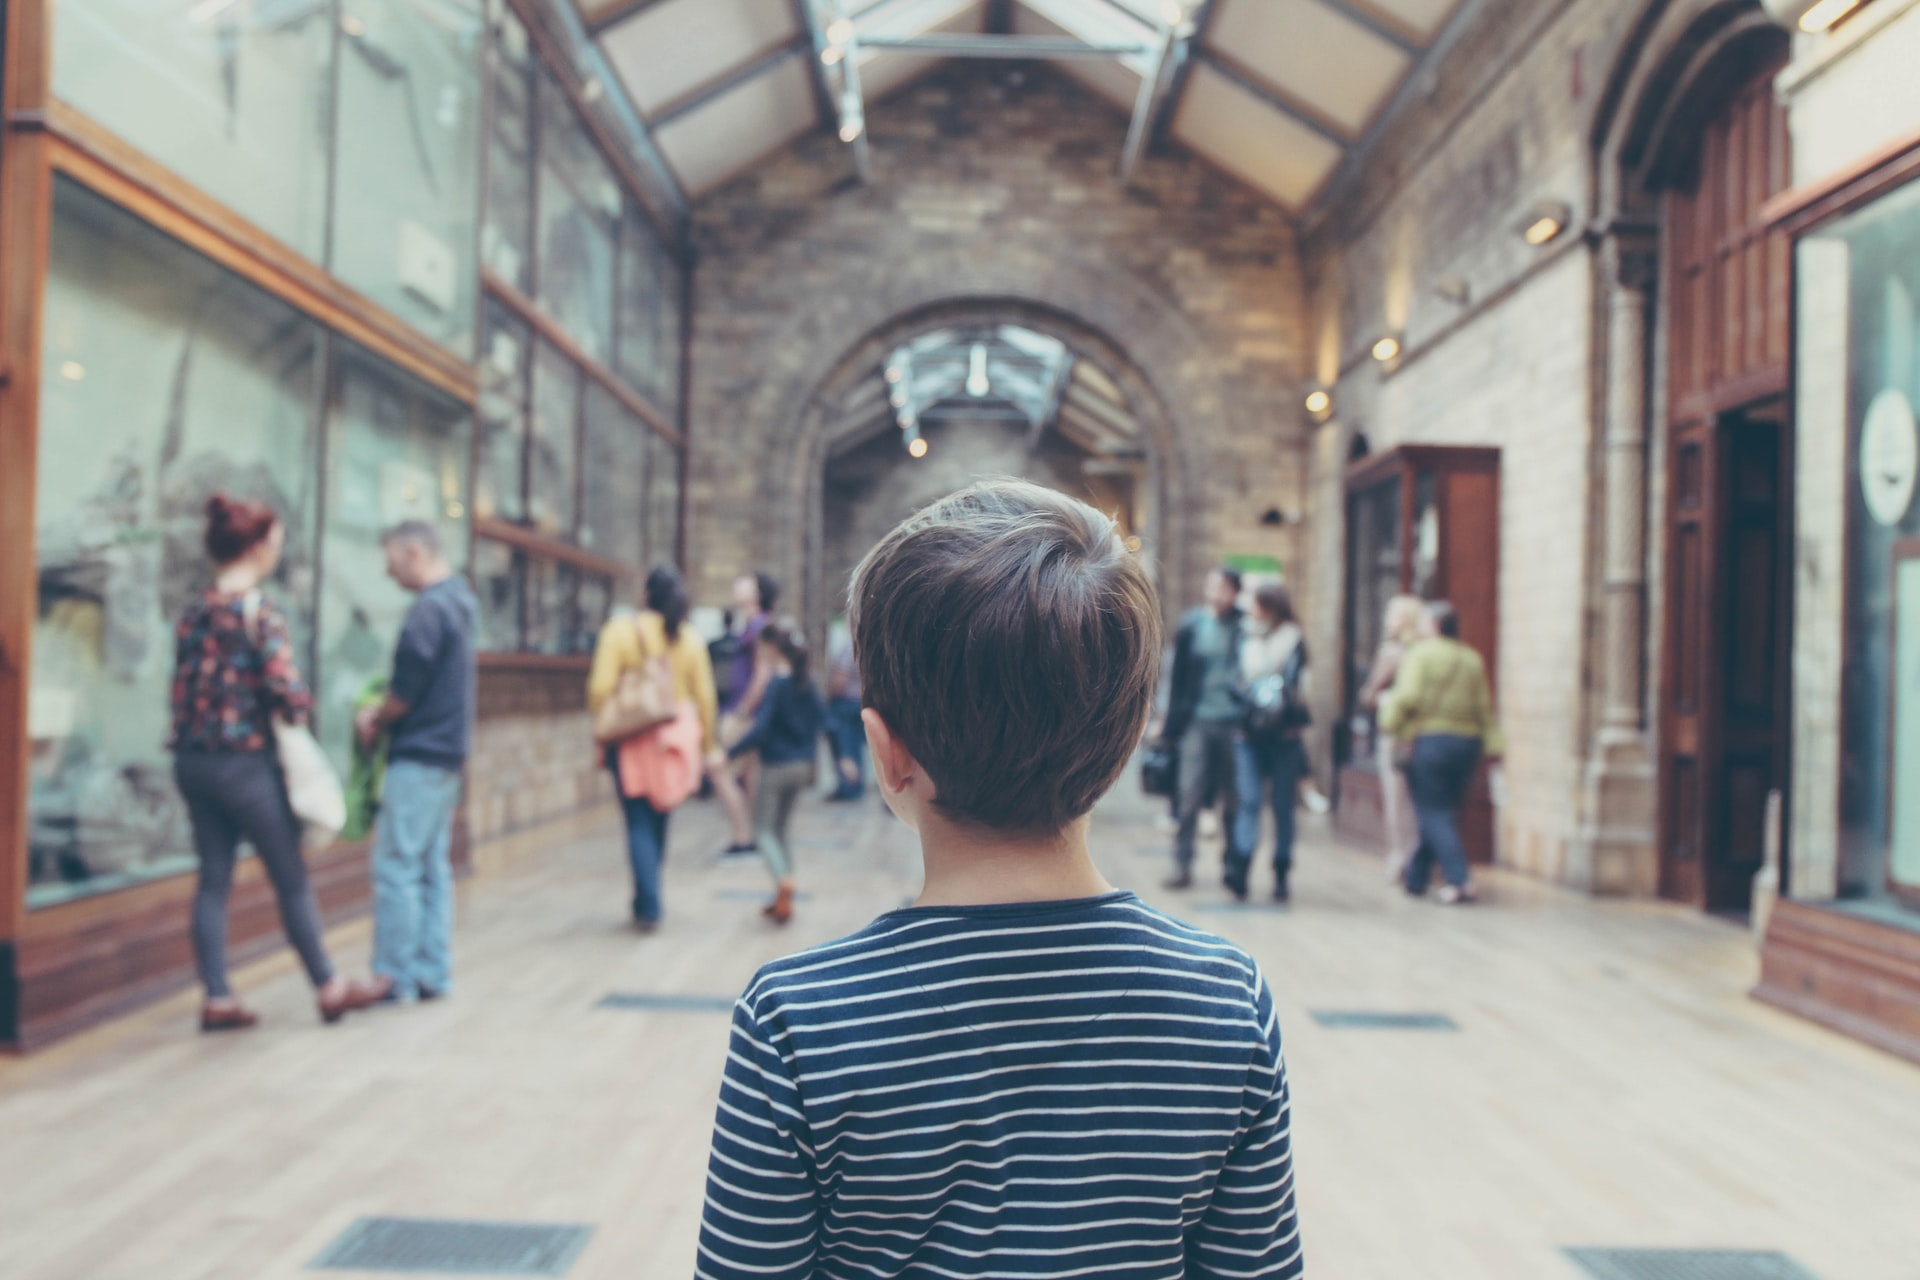 Back of a young boy looking at a museum exhibit.